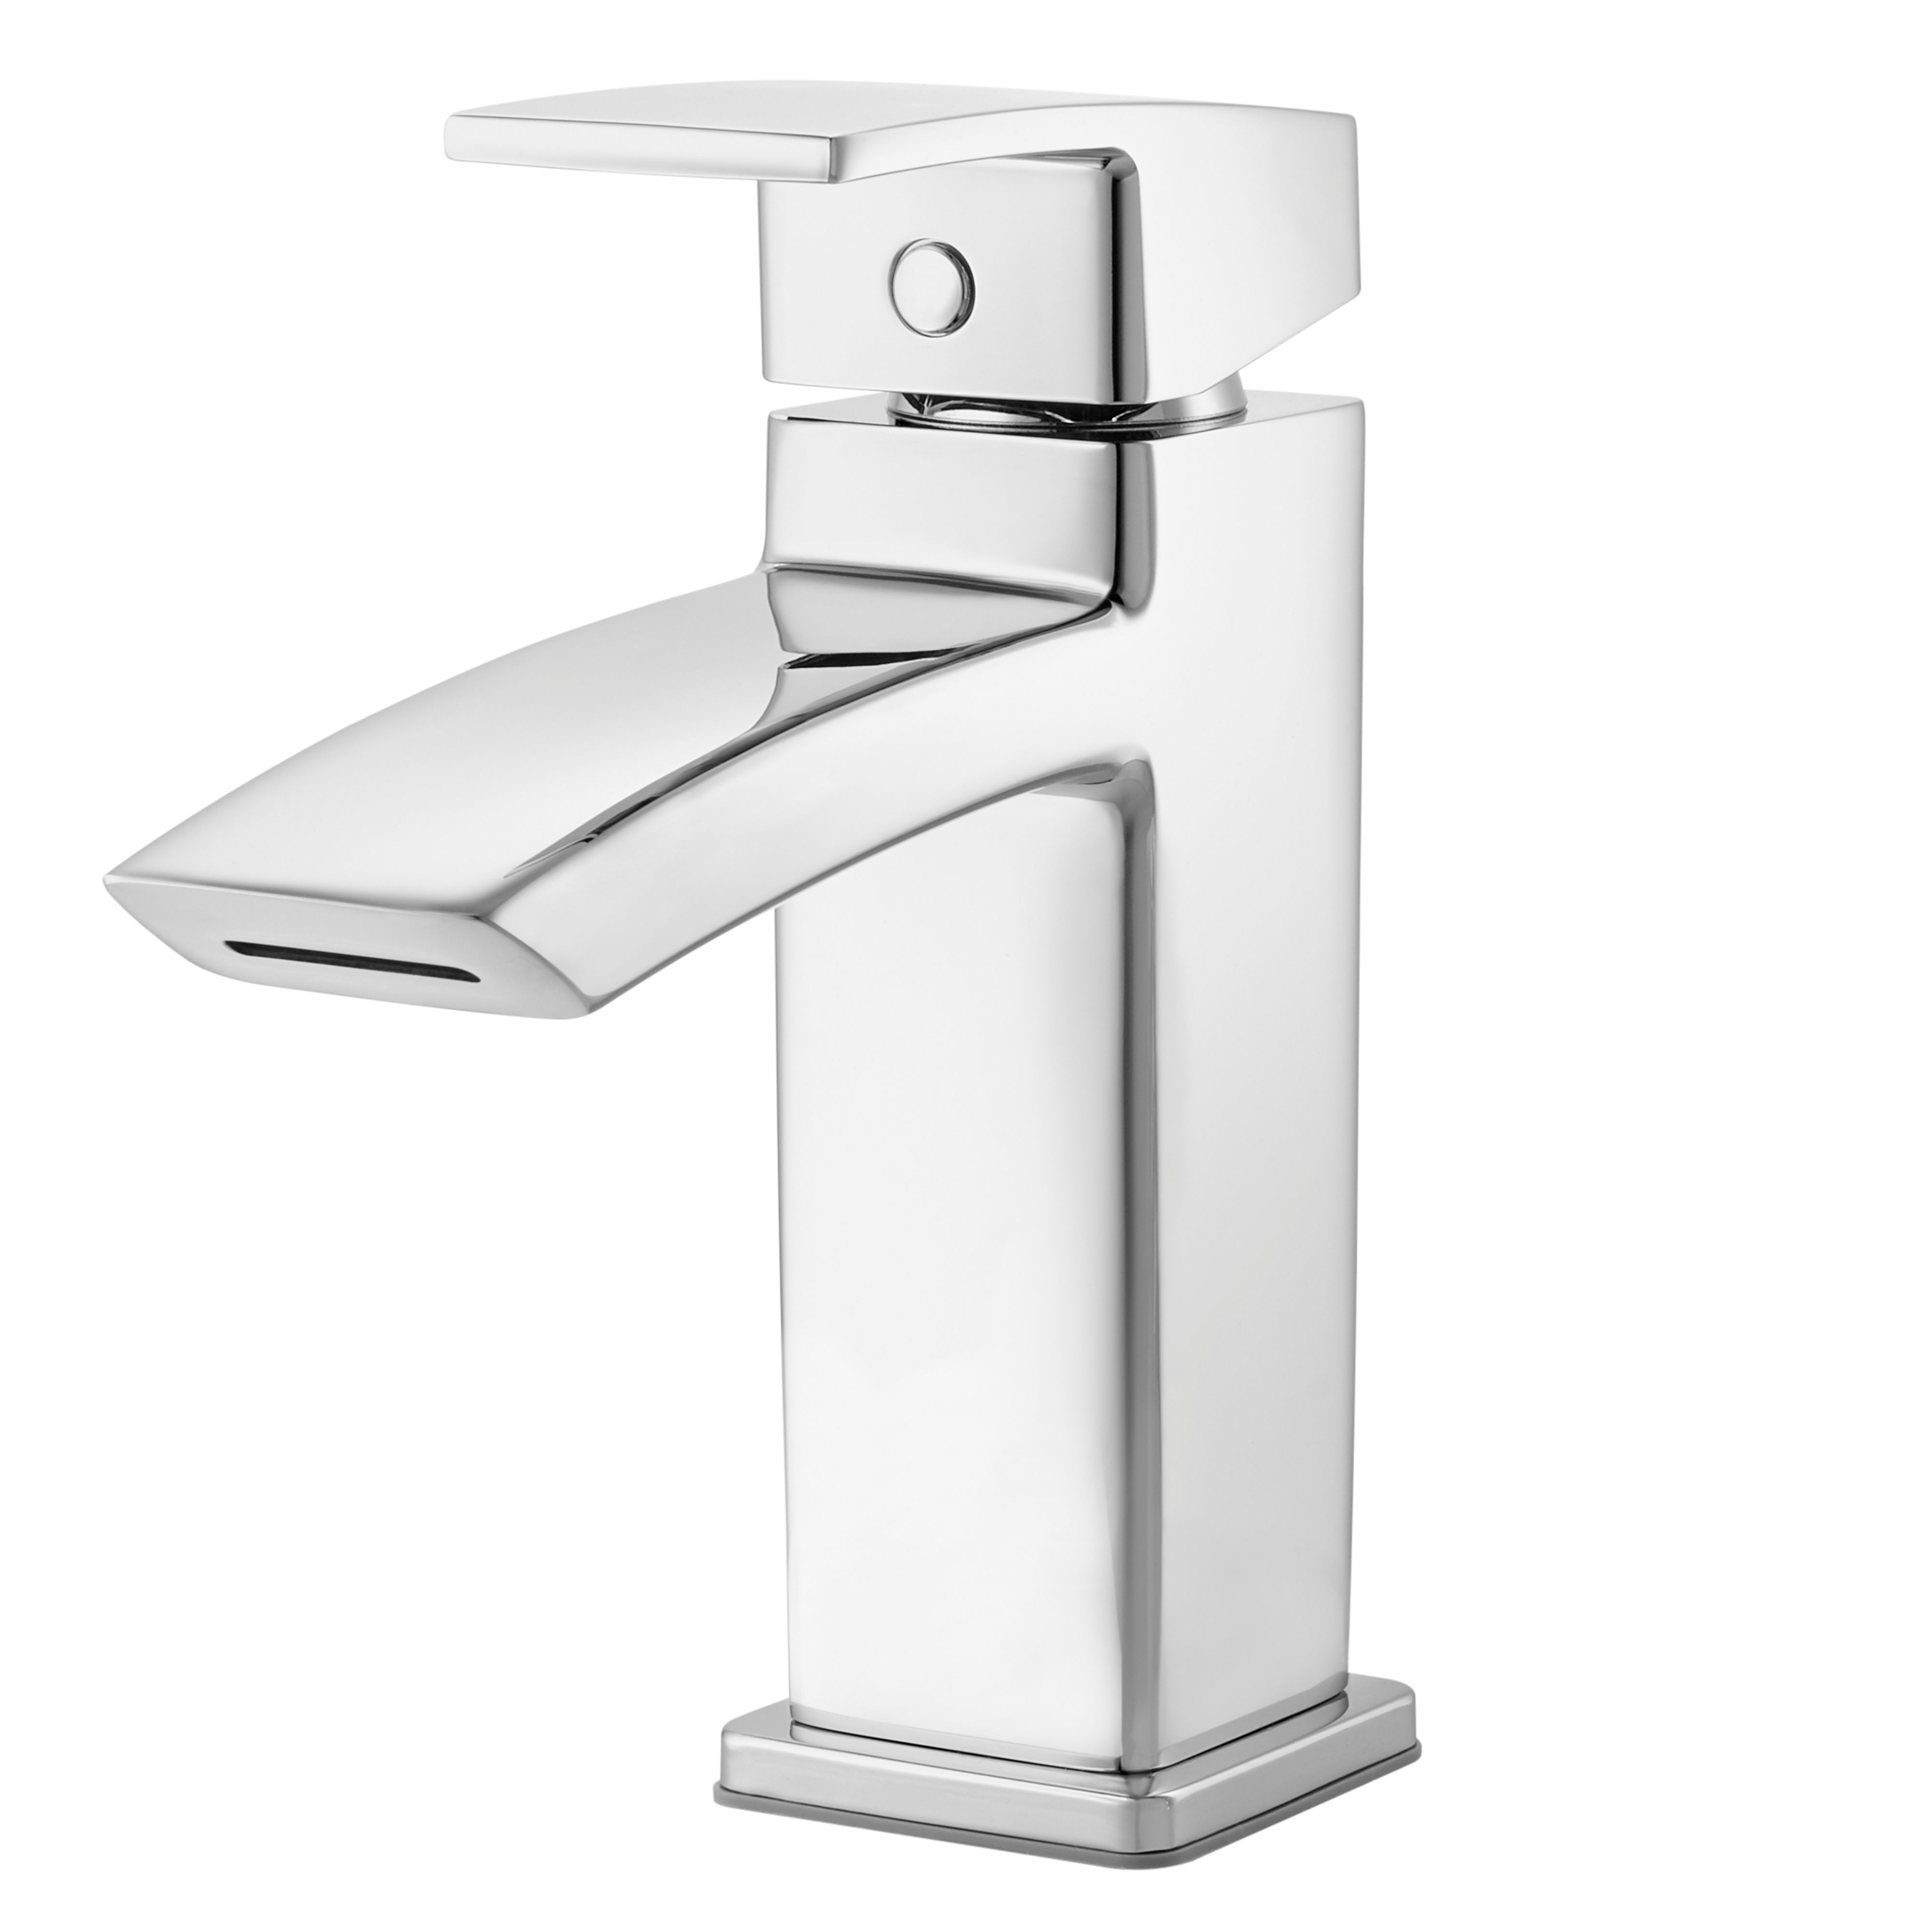 brushed bathroom faucet nickel pfister ashfield elegant with l price tub inspirational faucets lowes